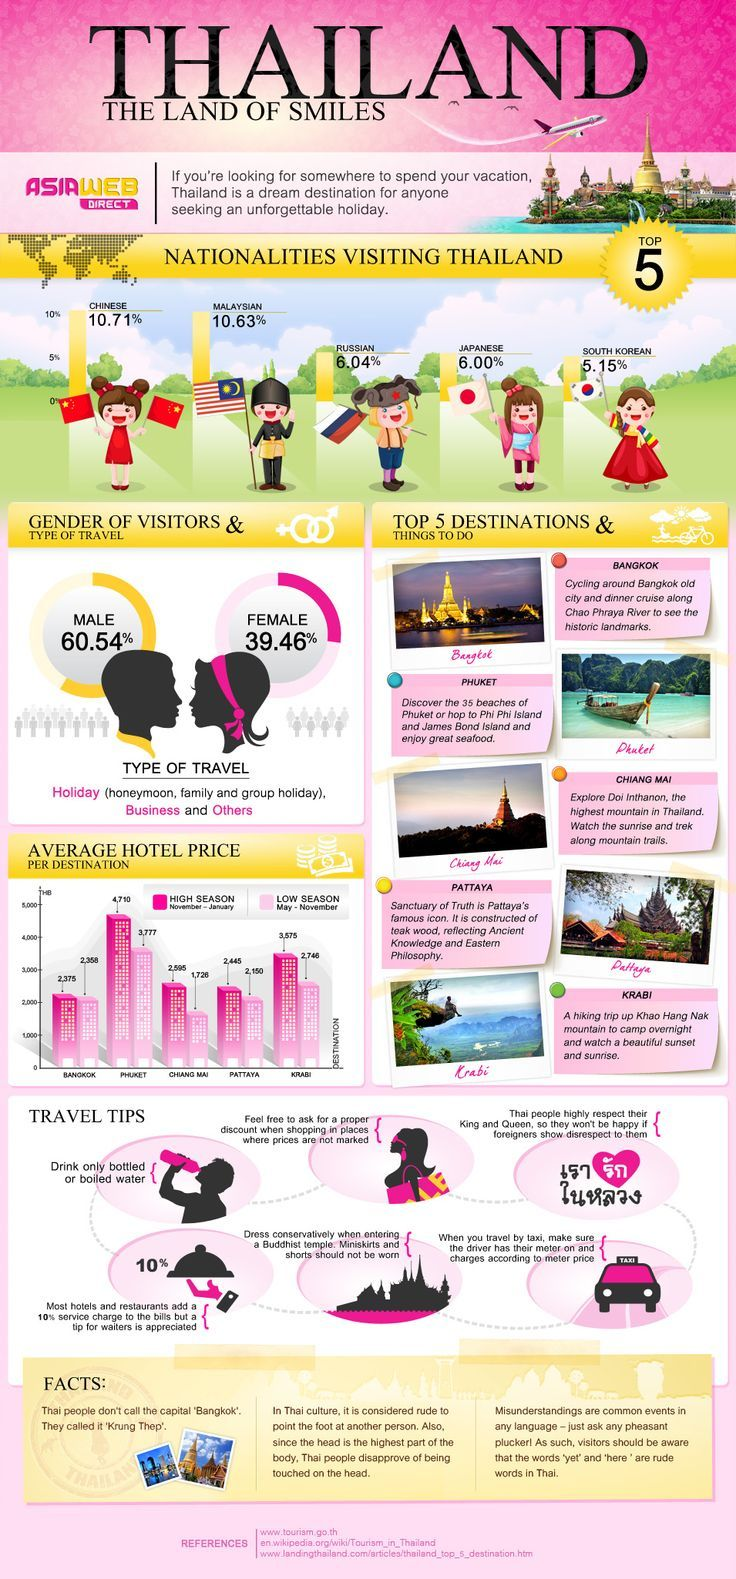 Have you decided where to spend your holiday yet? Don't think much further. Thailand is suitable for all types of travellers with heaps of things to d